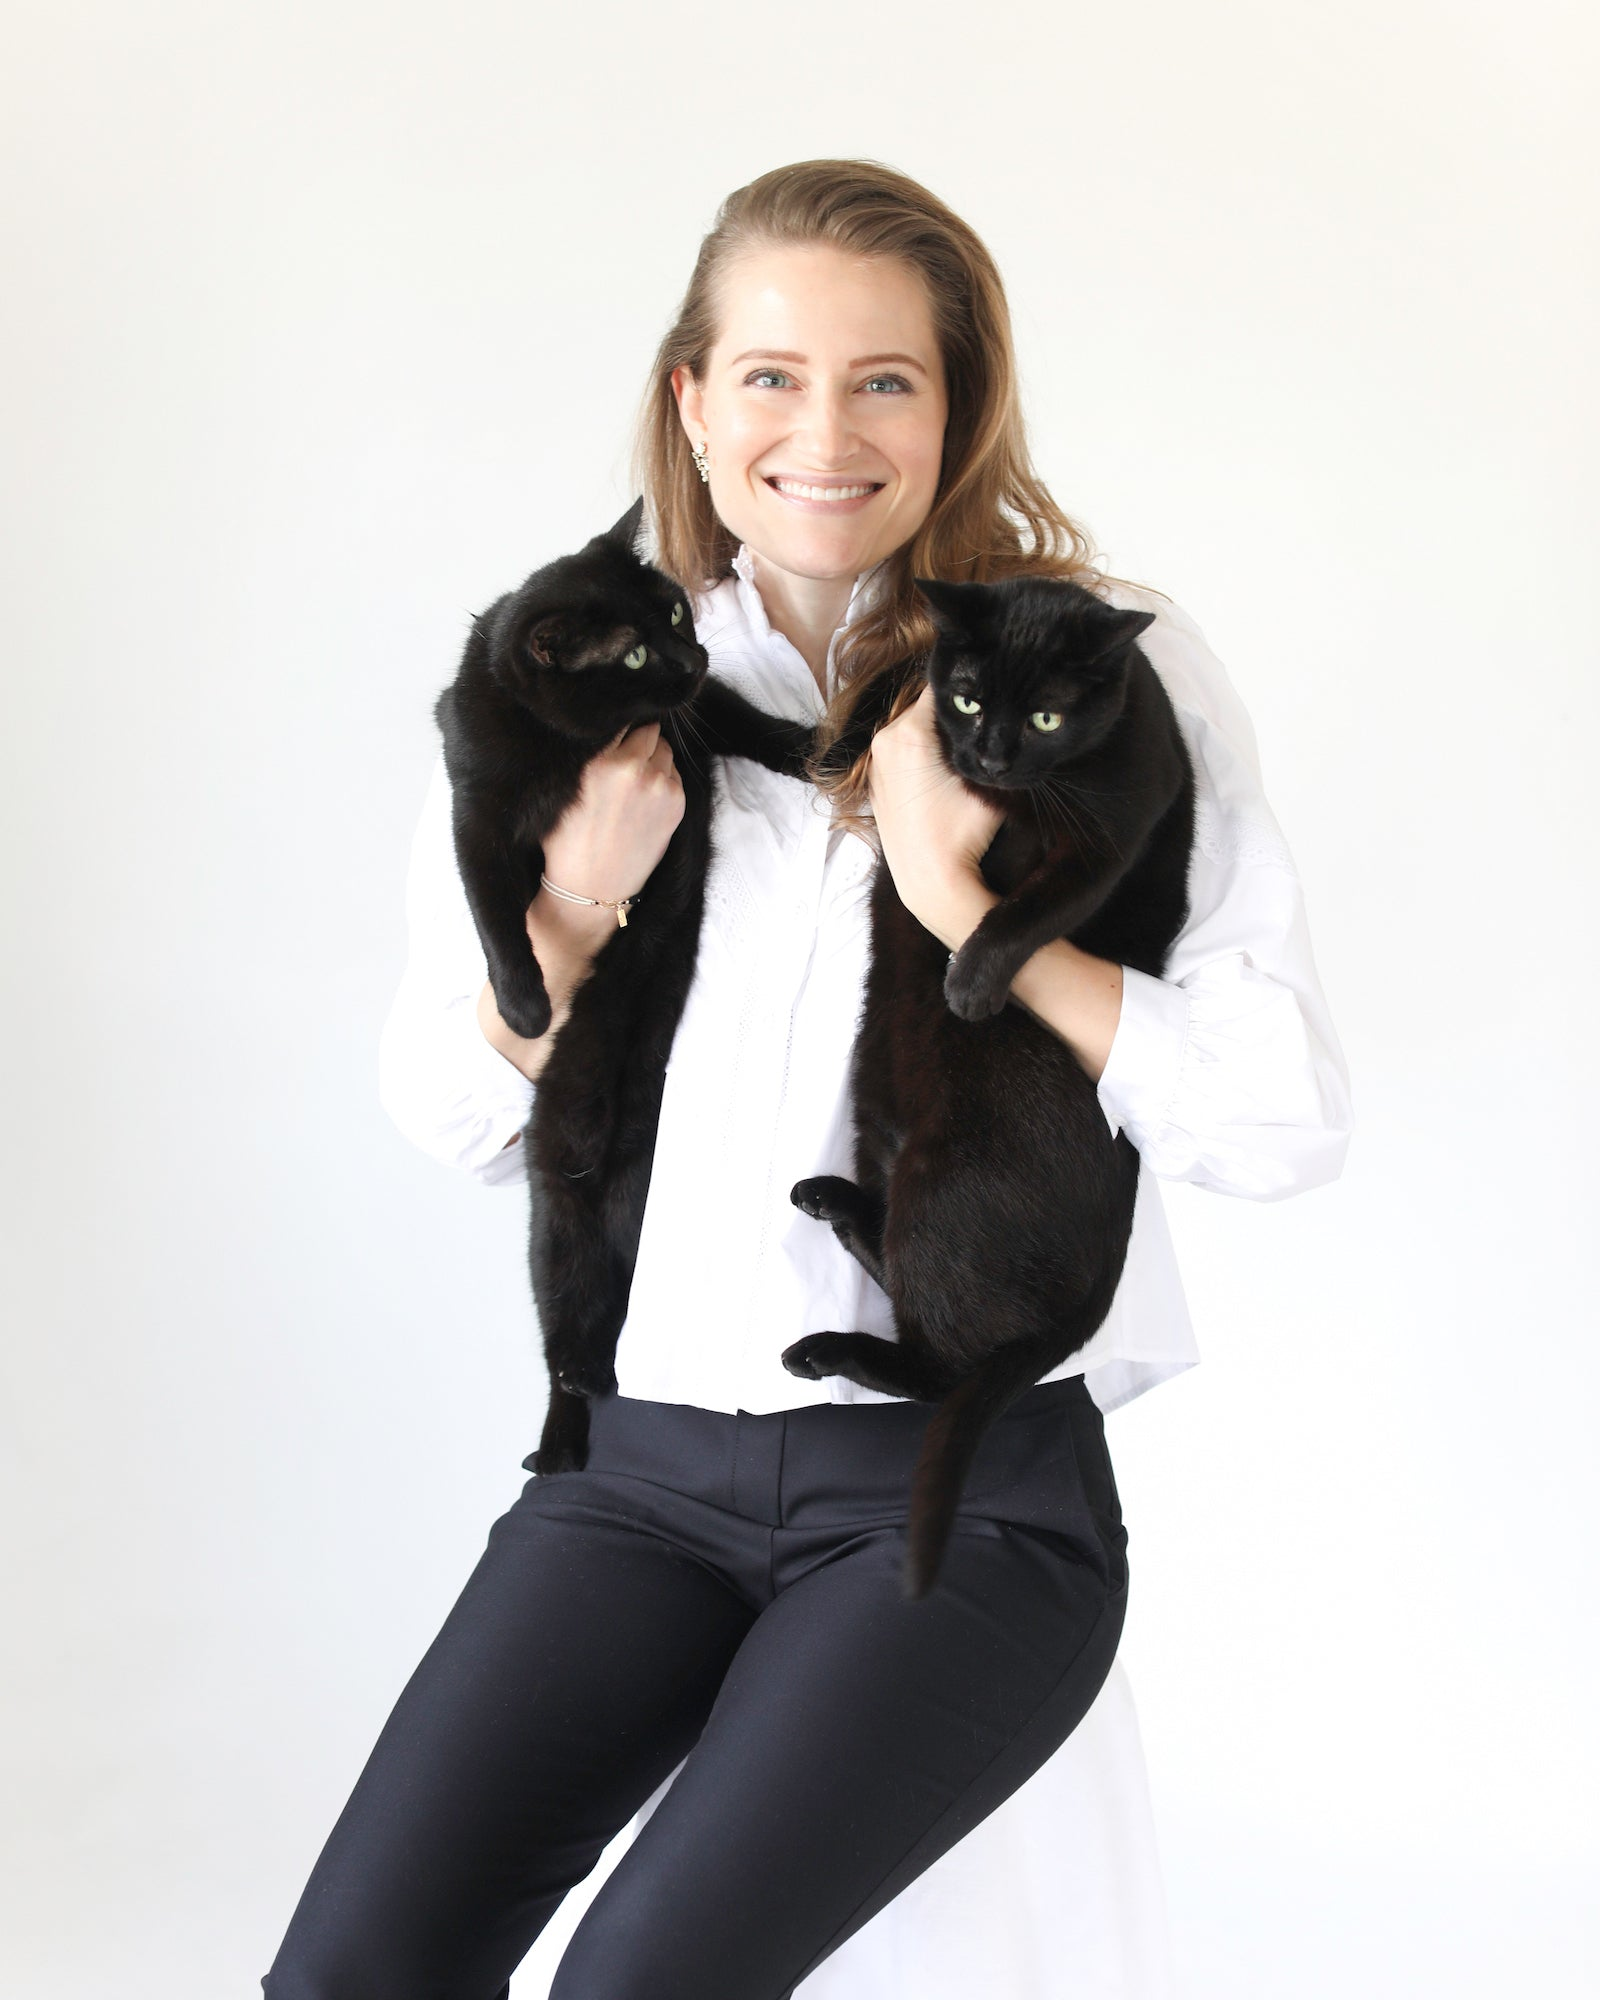 Meredith Swinehart founder of Faunamade with two black cats